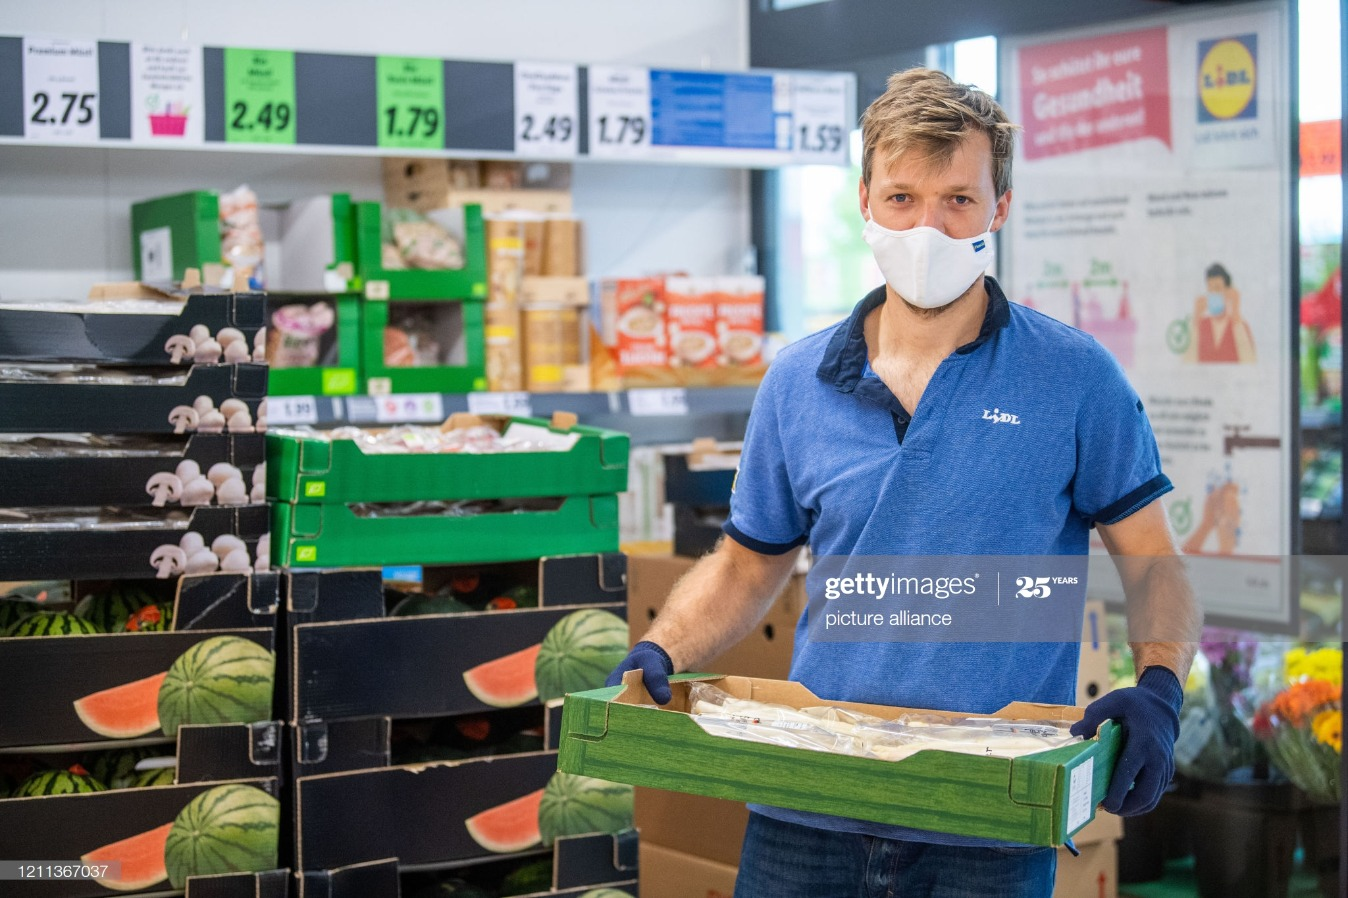 Coronavirus - tennis pro works for discounters : News Photo